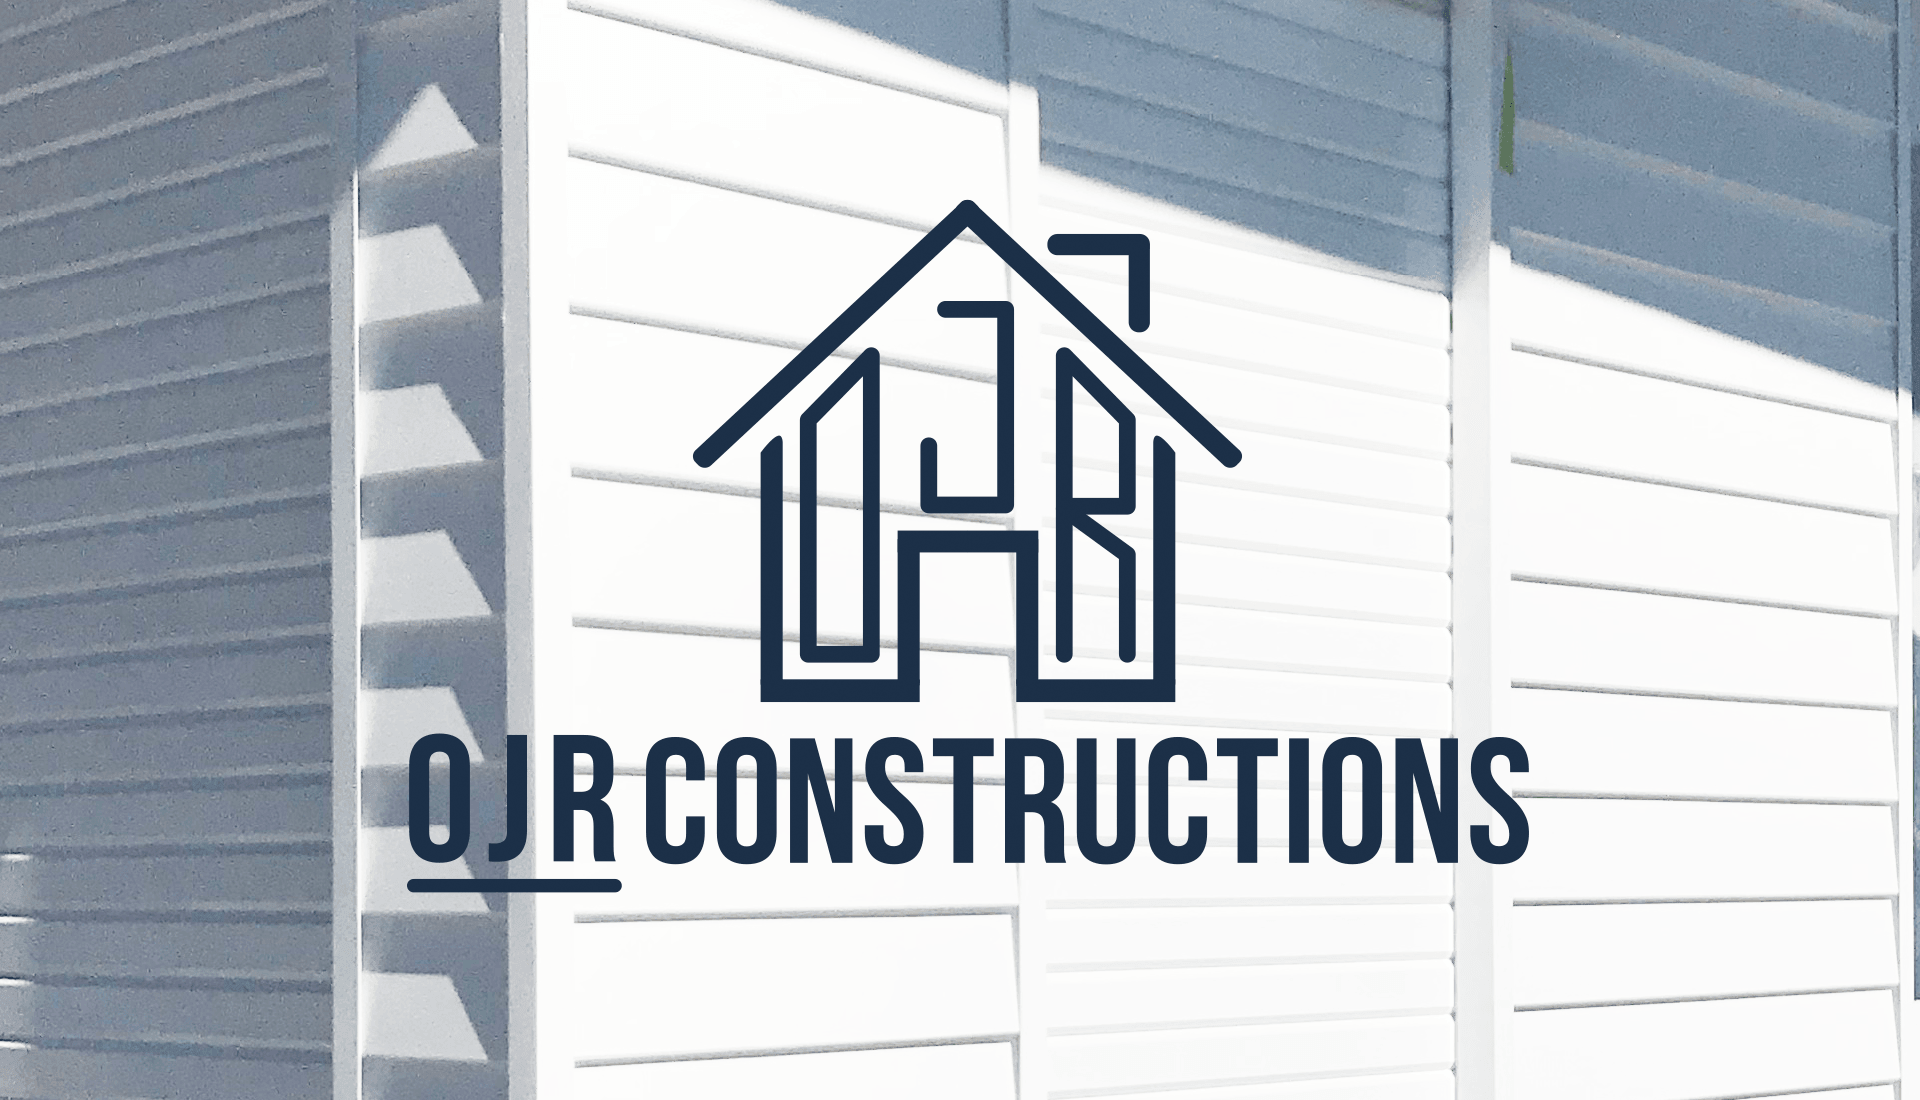 OJR Construction, Carpentry, Renovations, Decks, Pergolas, Shopfitting, Gold Coast, Tweed Heads, Brisbane